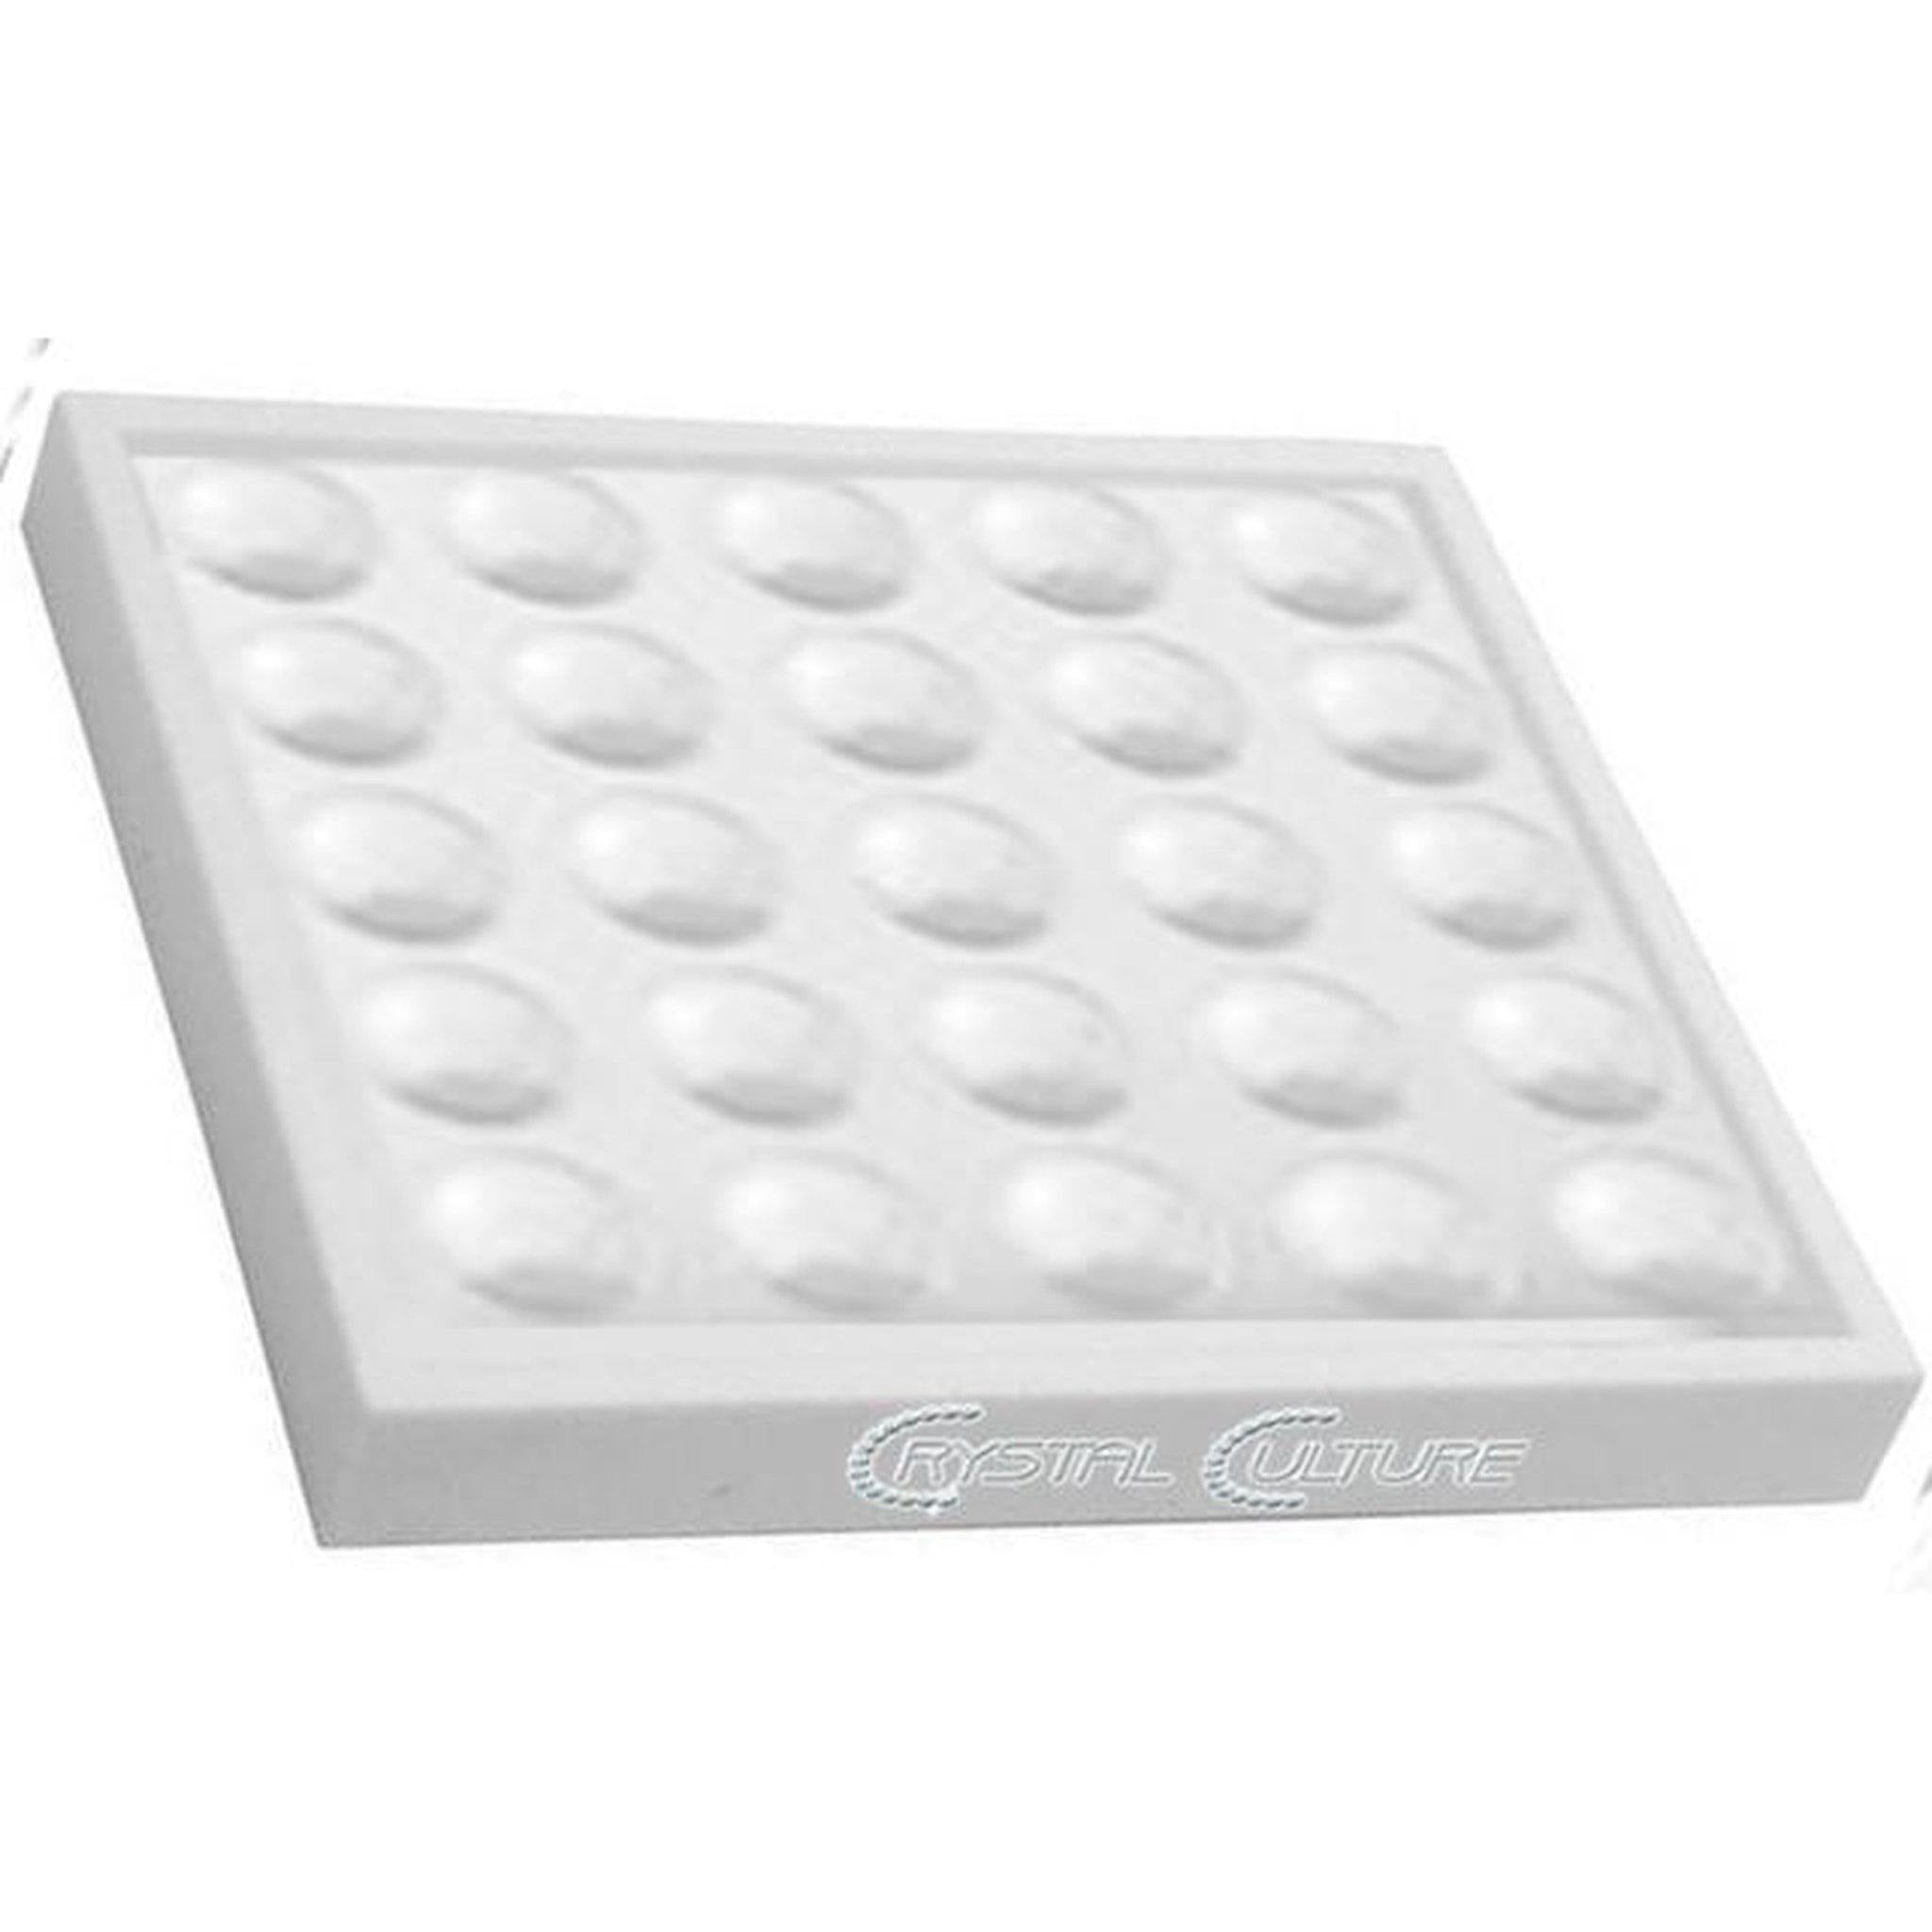 Crystal Culture Tray - Small-Gel Essentialz